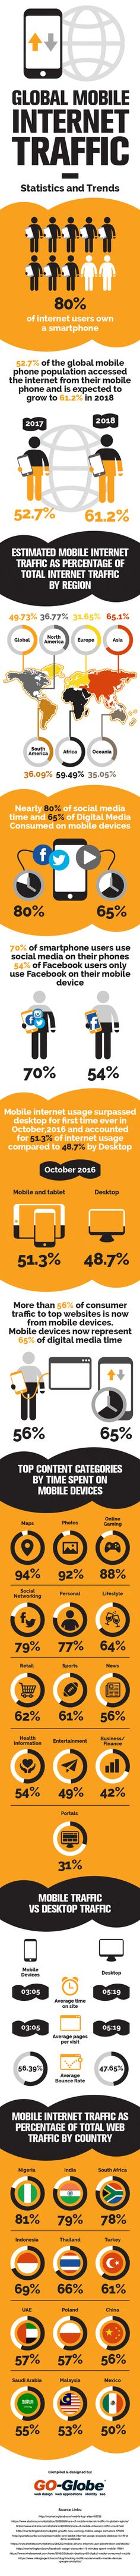 Global Mobile Internet Traffic - Statistics and Trends - #Infographic